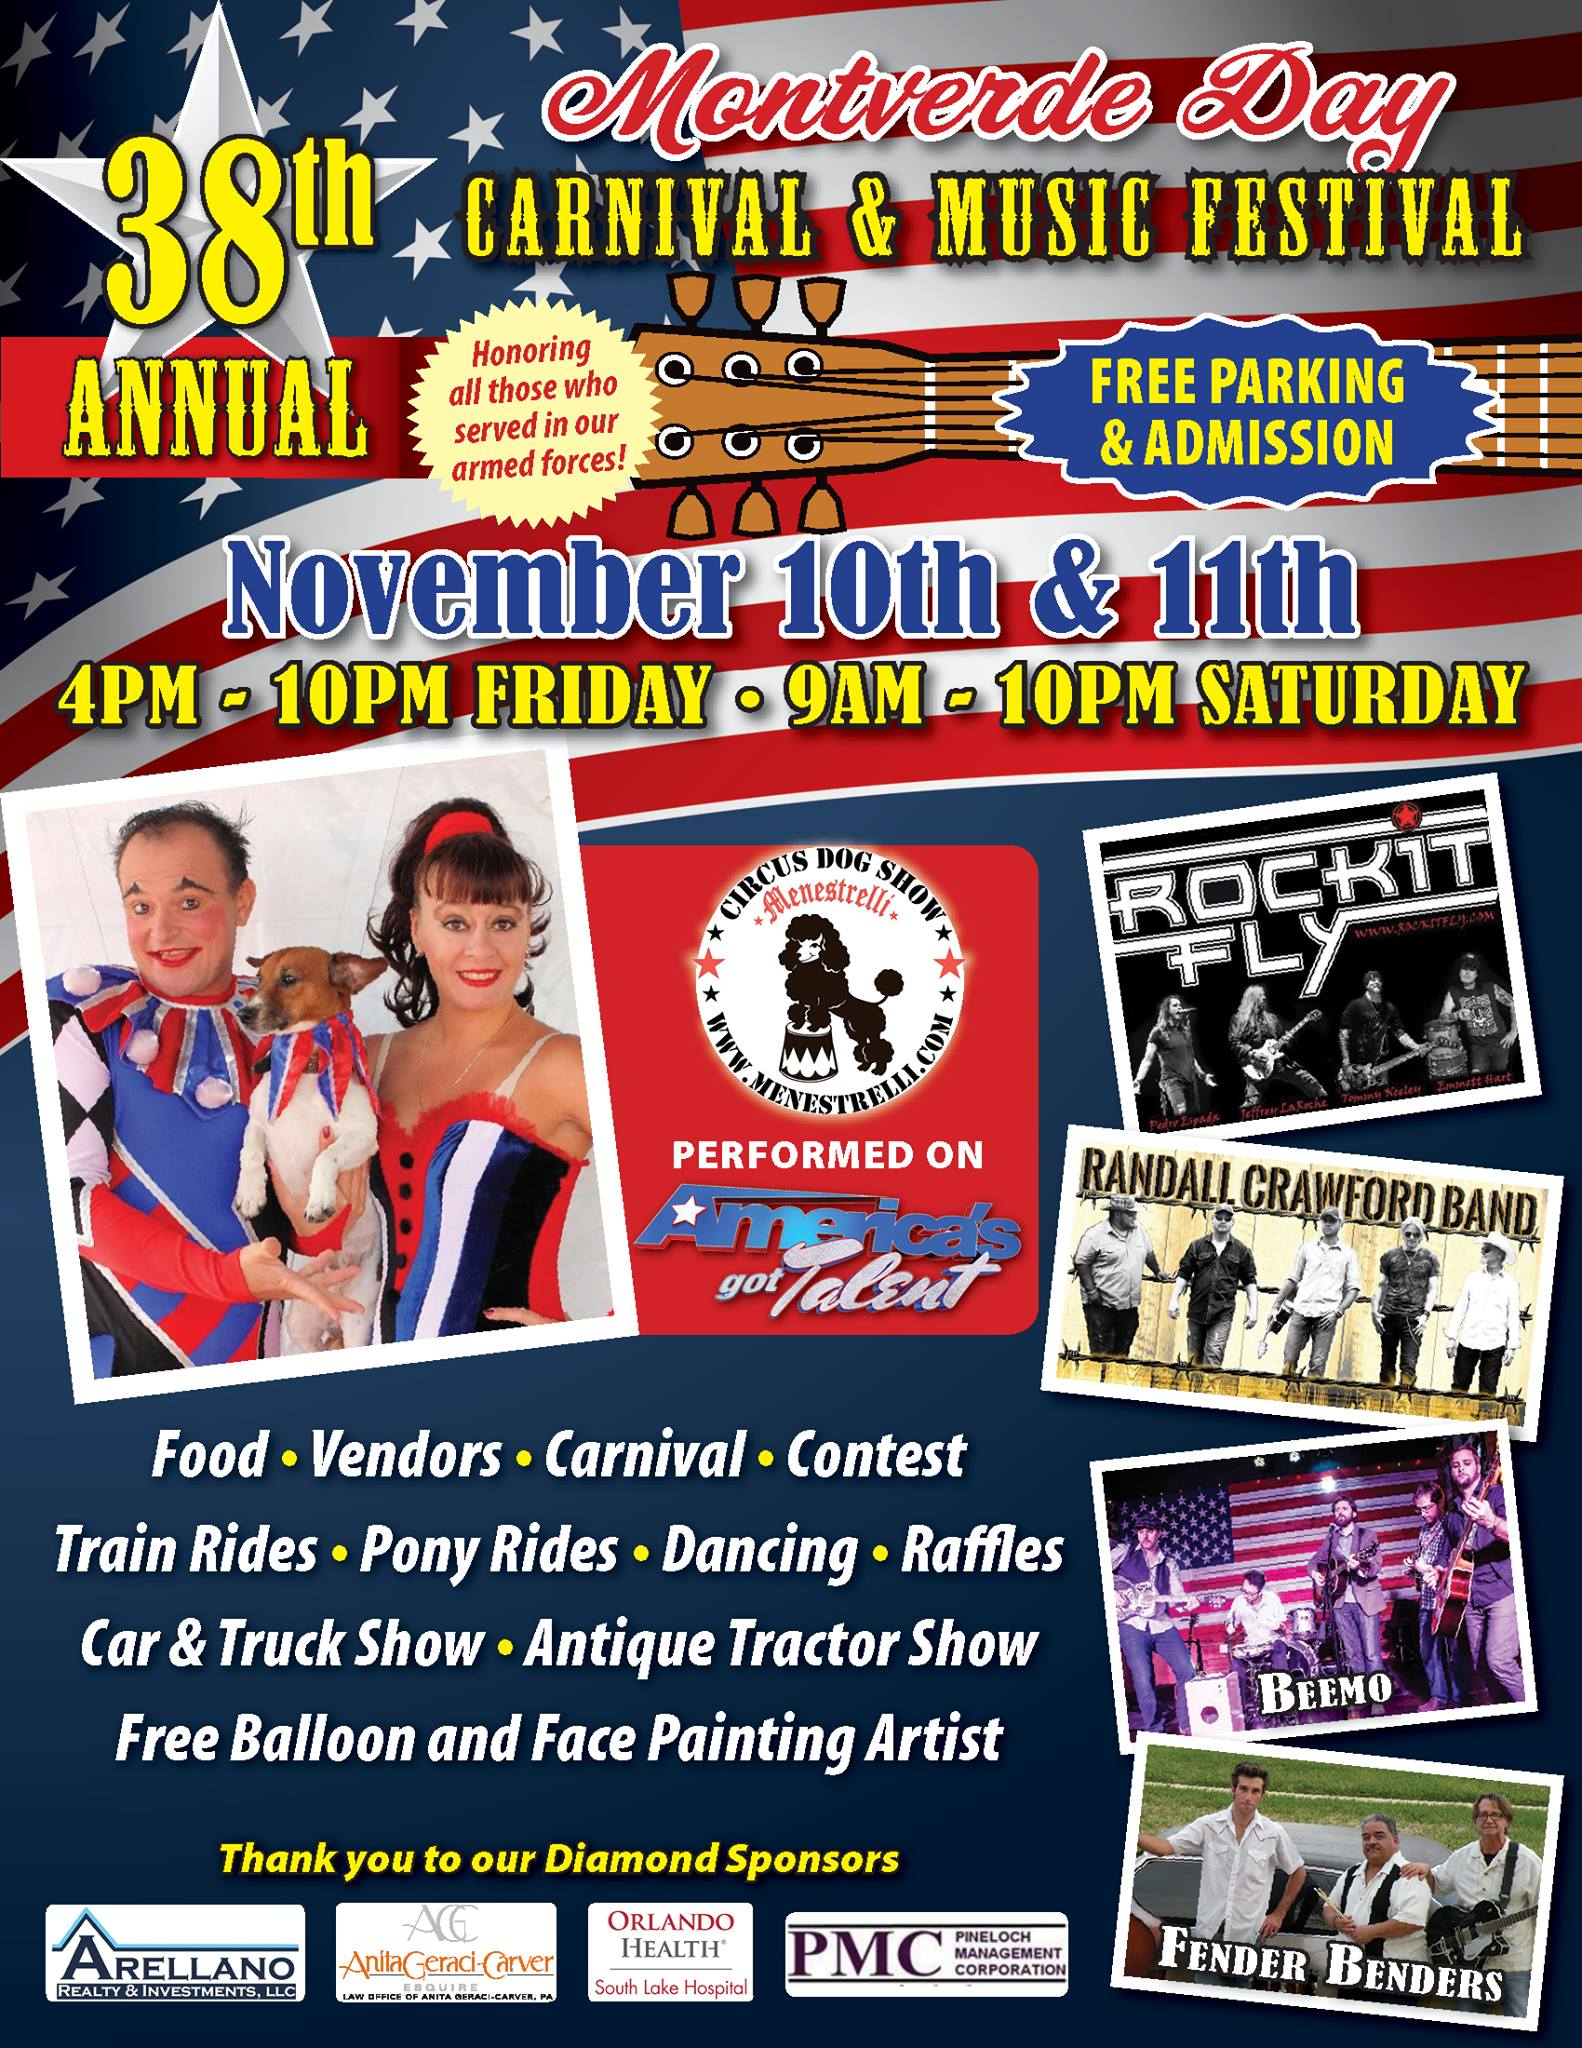 38th Annual Montverde Day Nov 10 & 11th